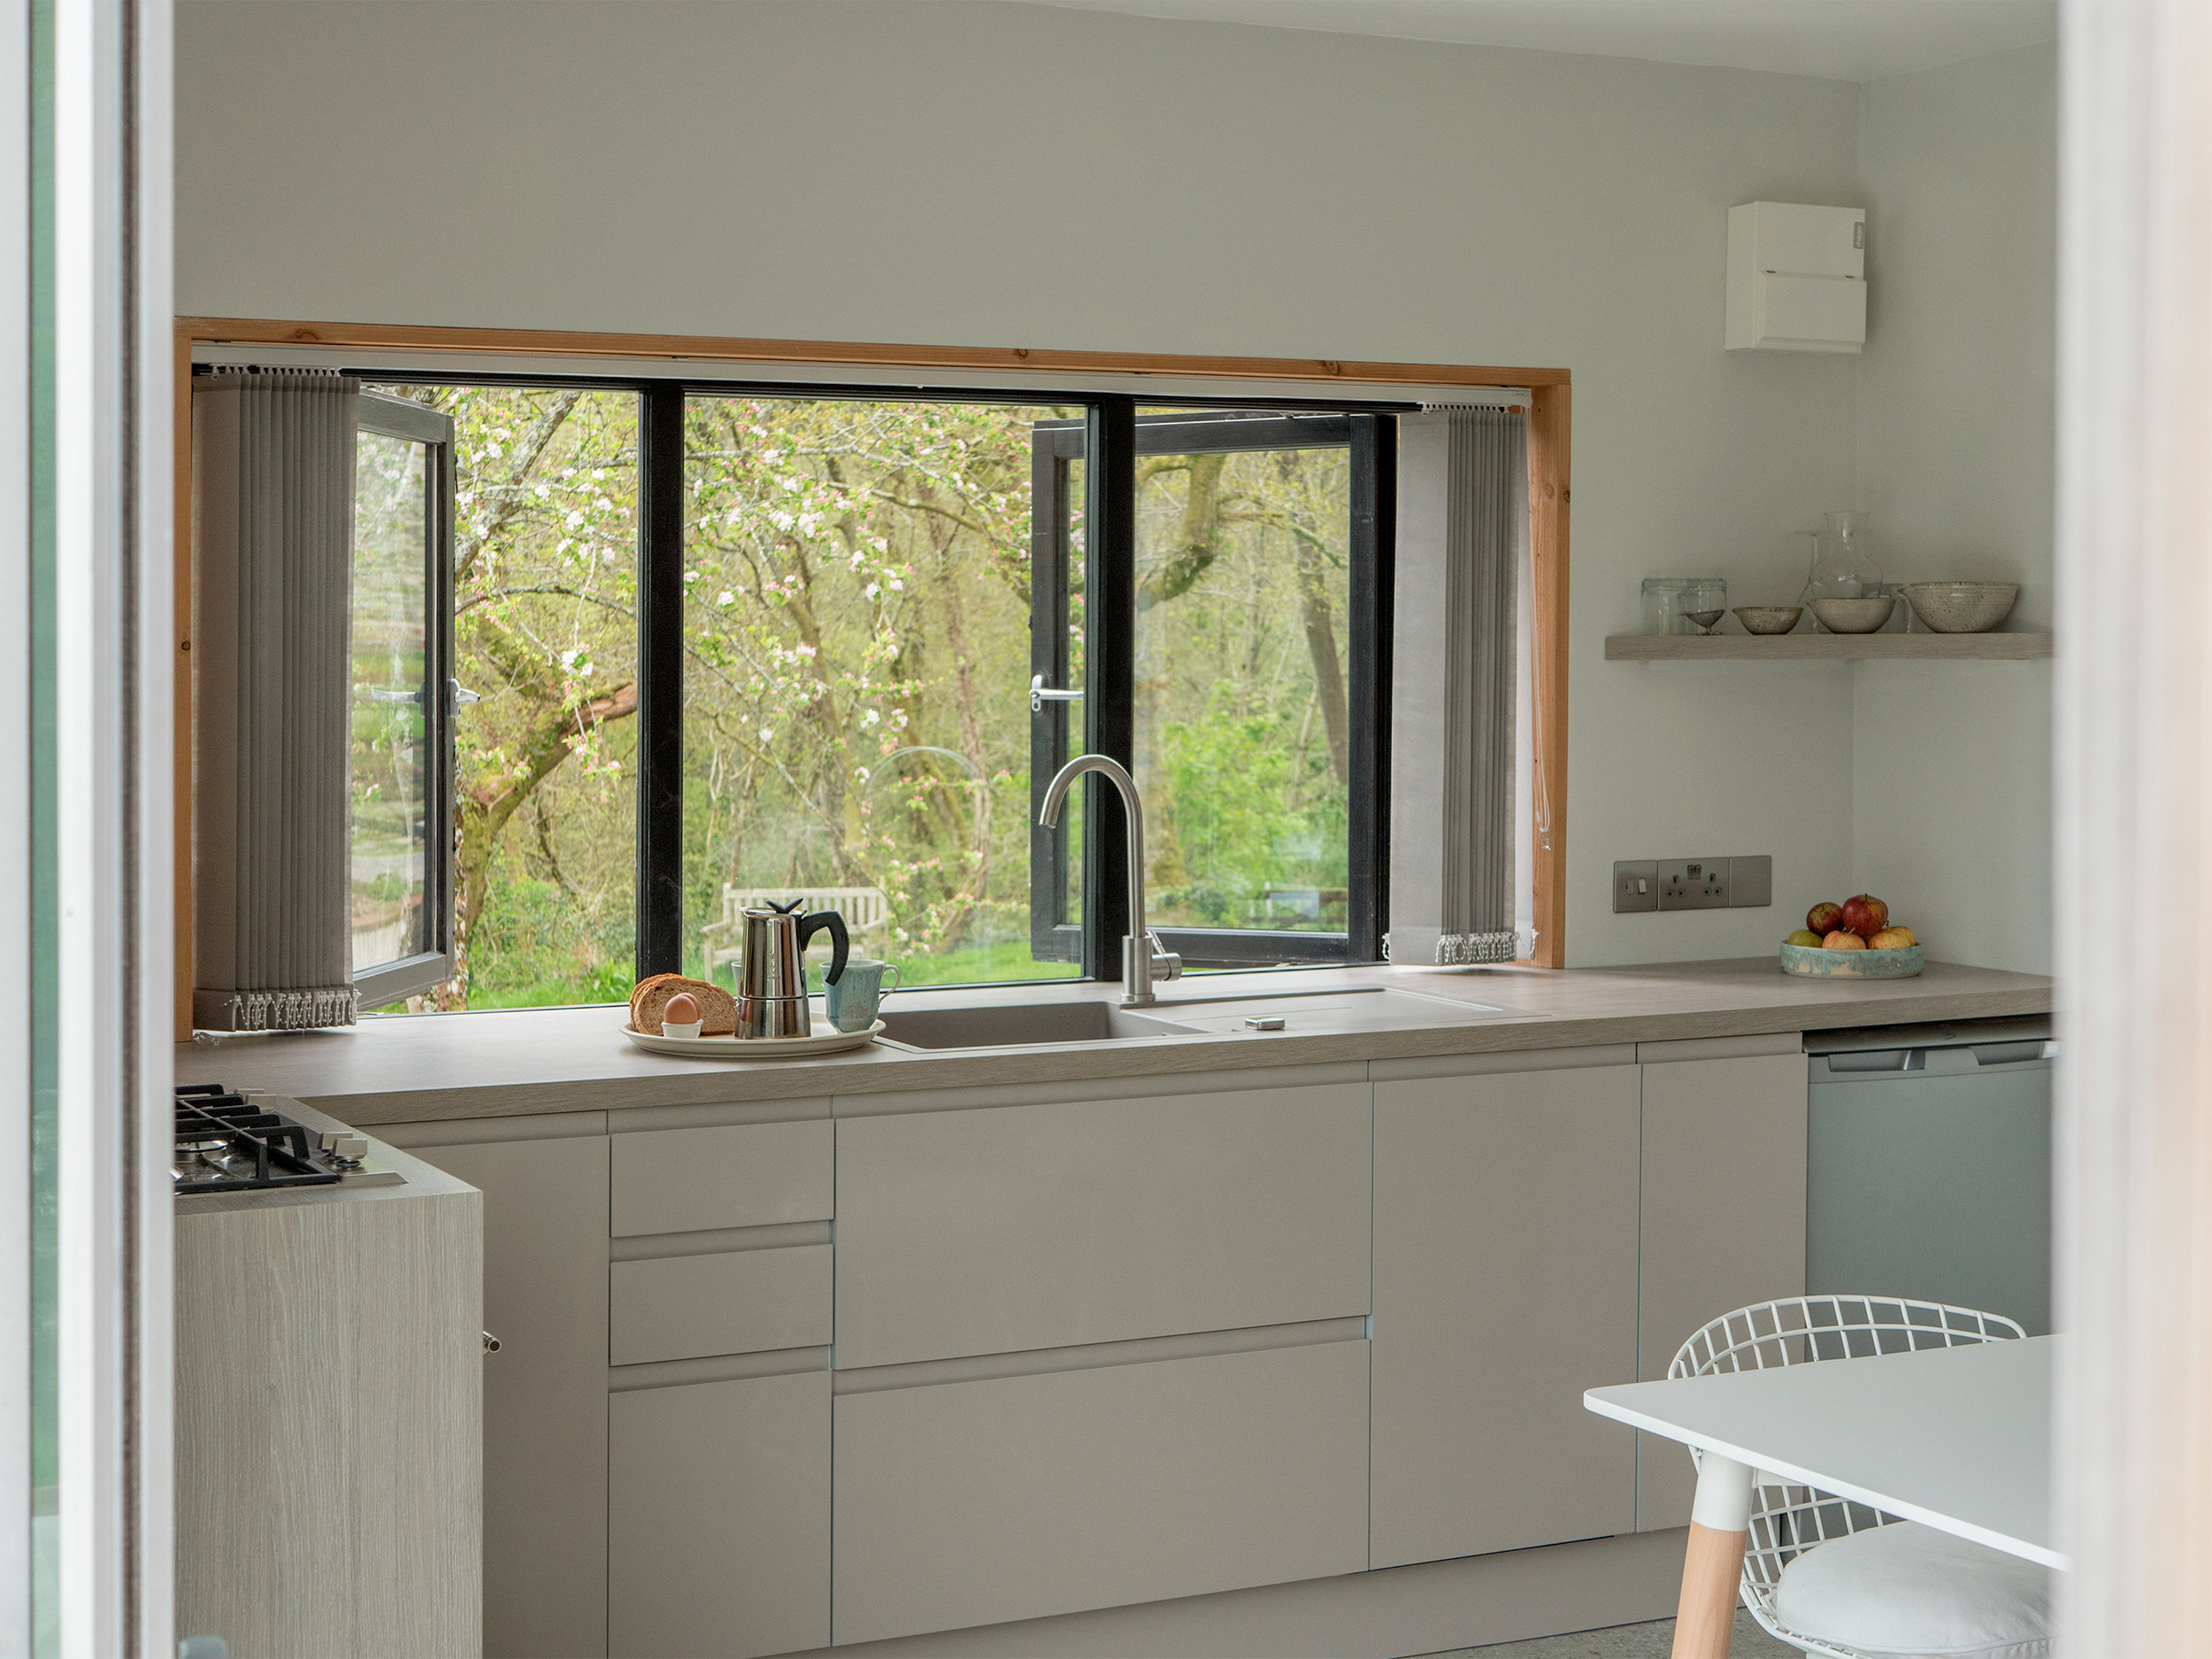 The Kitchen has a gas oven and hob, great for cooking up a feast of local produce.